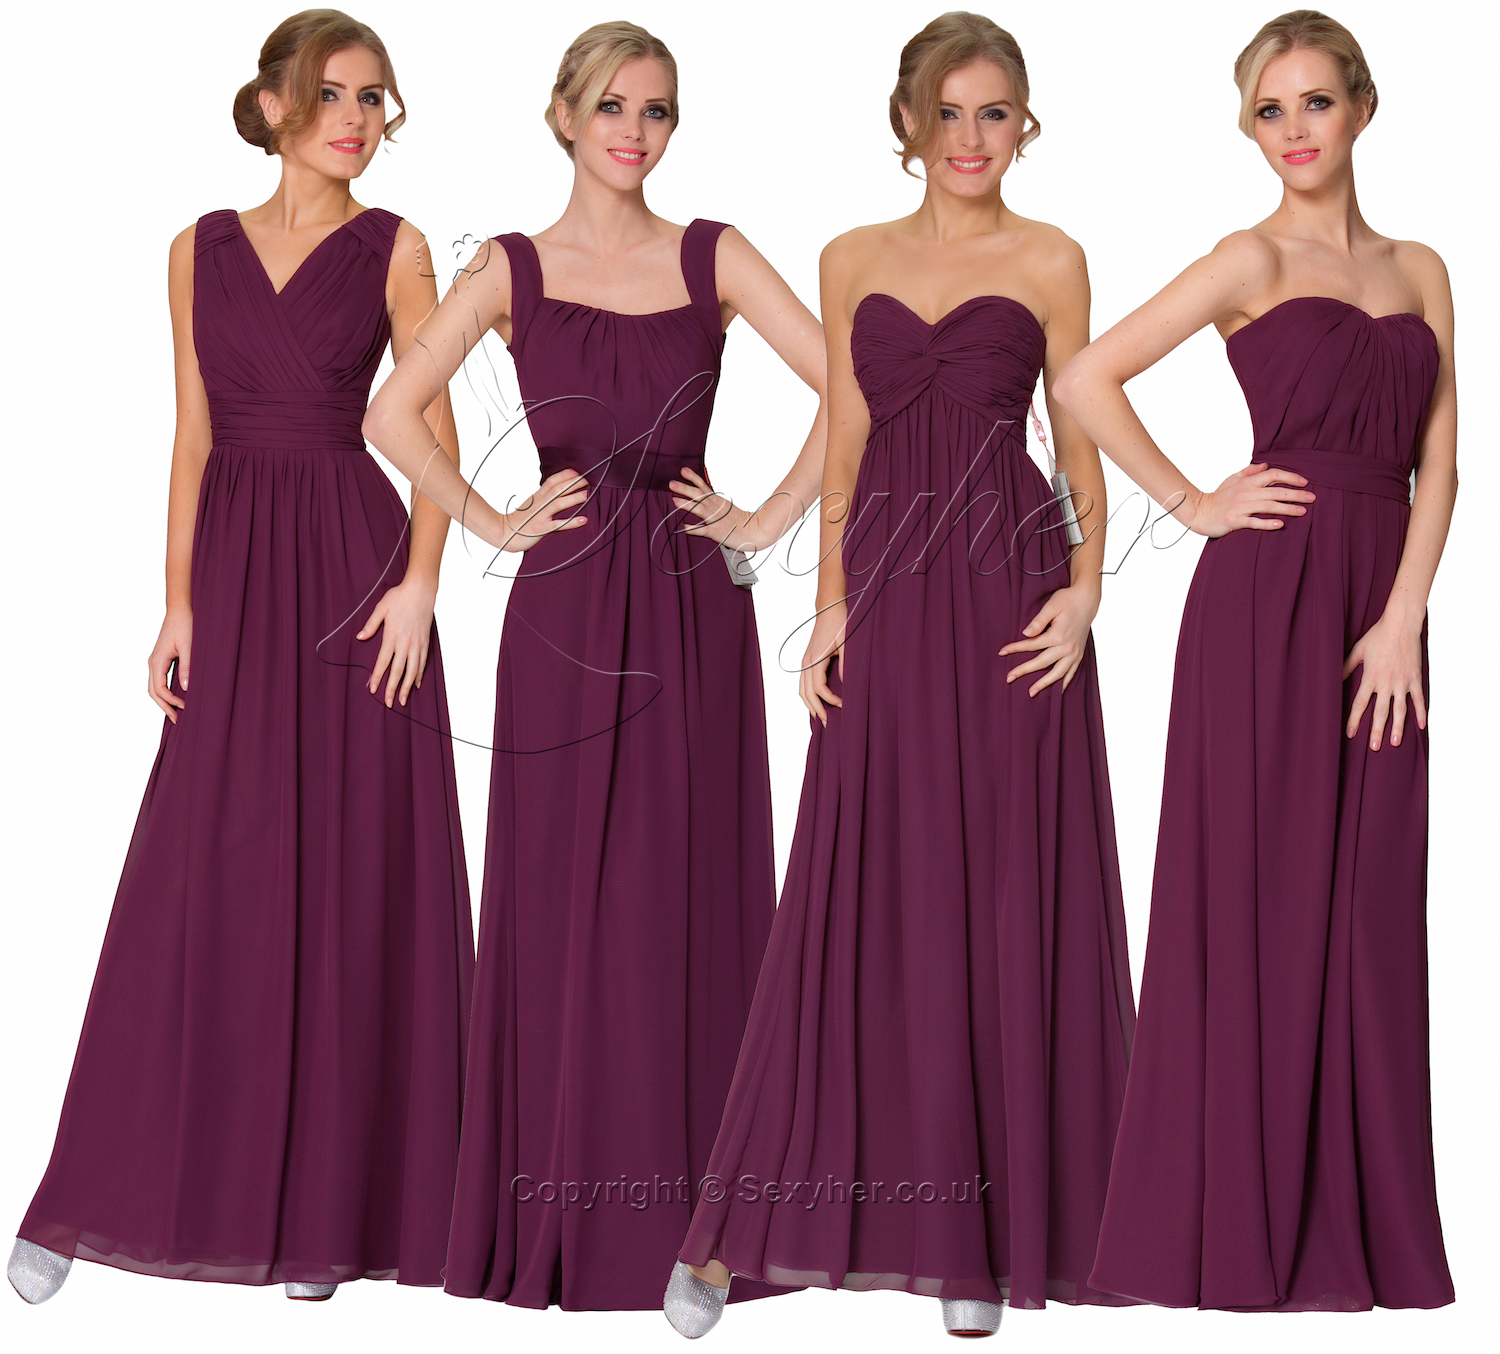 3aeaa813b4a Tips for ordering your bridesmaid dresses from Sexyher